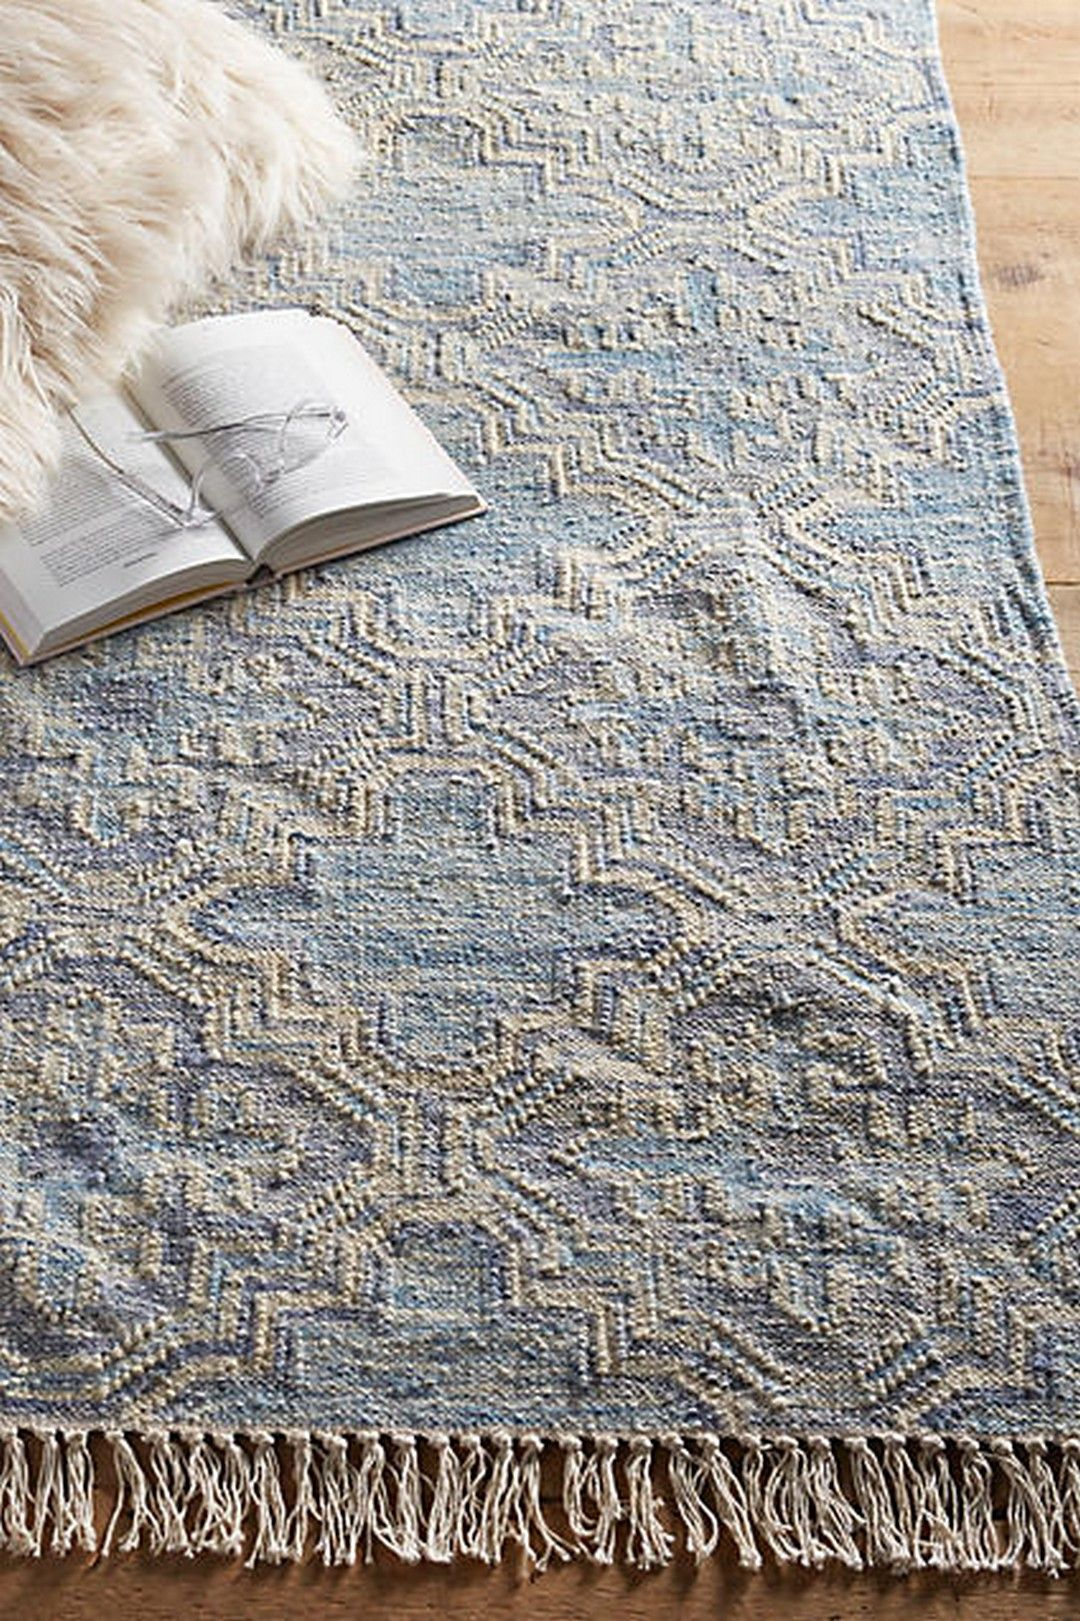 nice Exclusive Magical Thingking Collection Kilim Rugs: 99 Inspired Design http://www.99architecture.com/2017/03/25/exclusive-magical-thingking-collection-kilim-rugs-99-inspired-design/